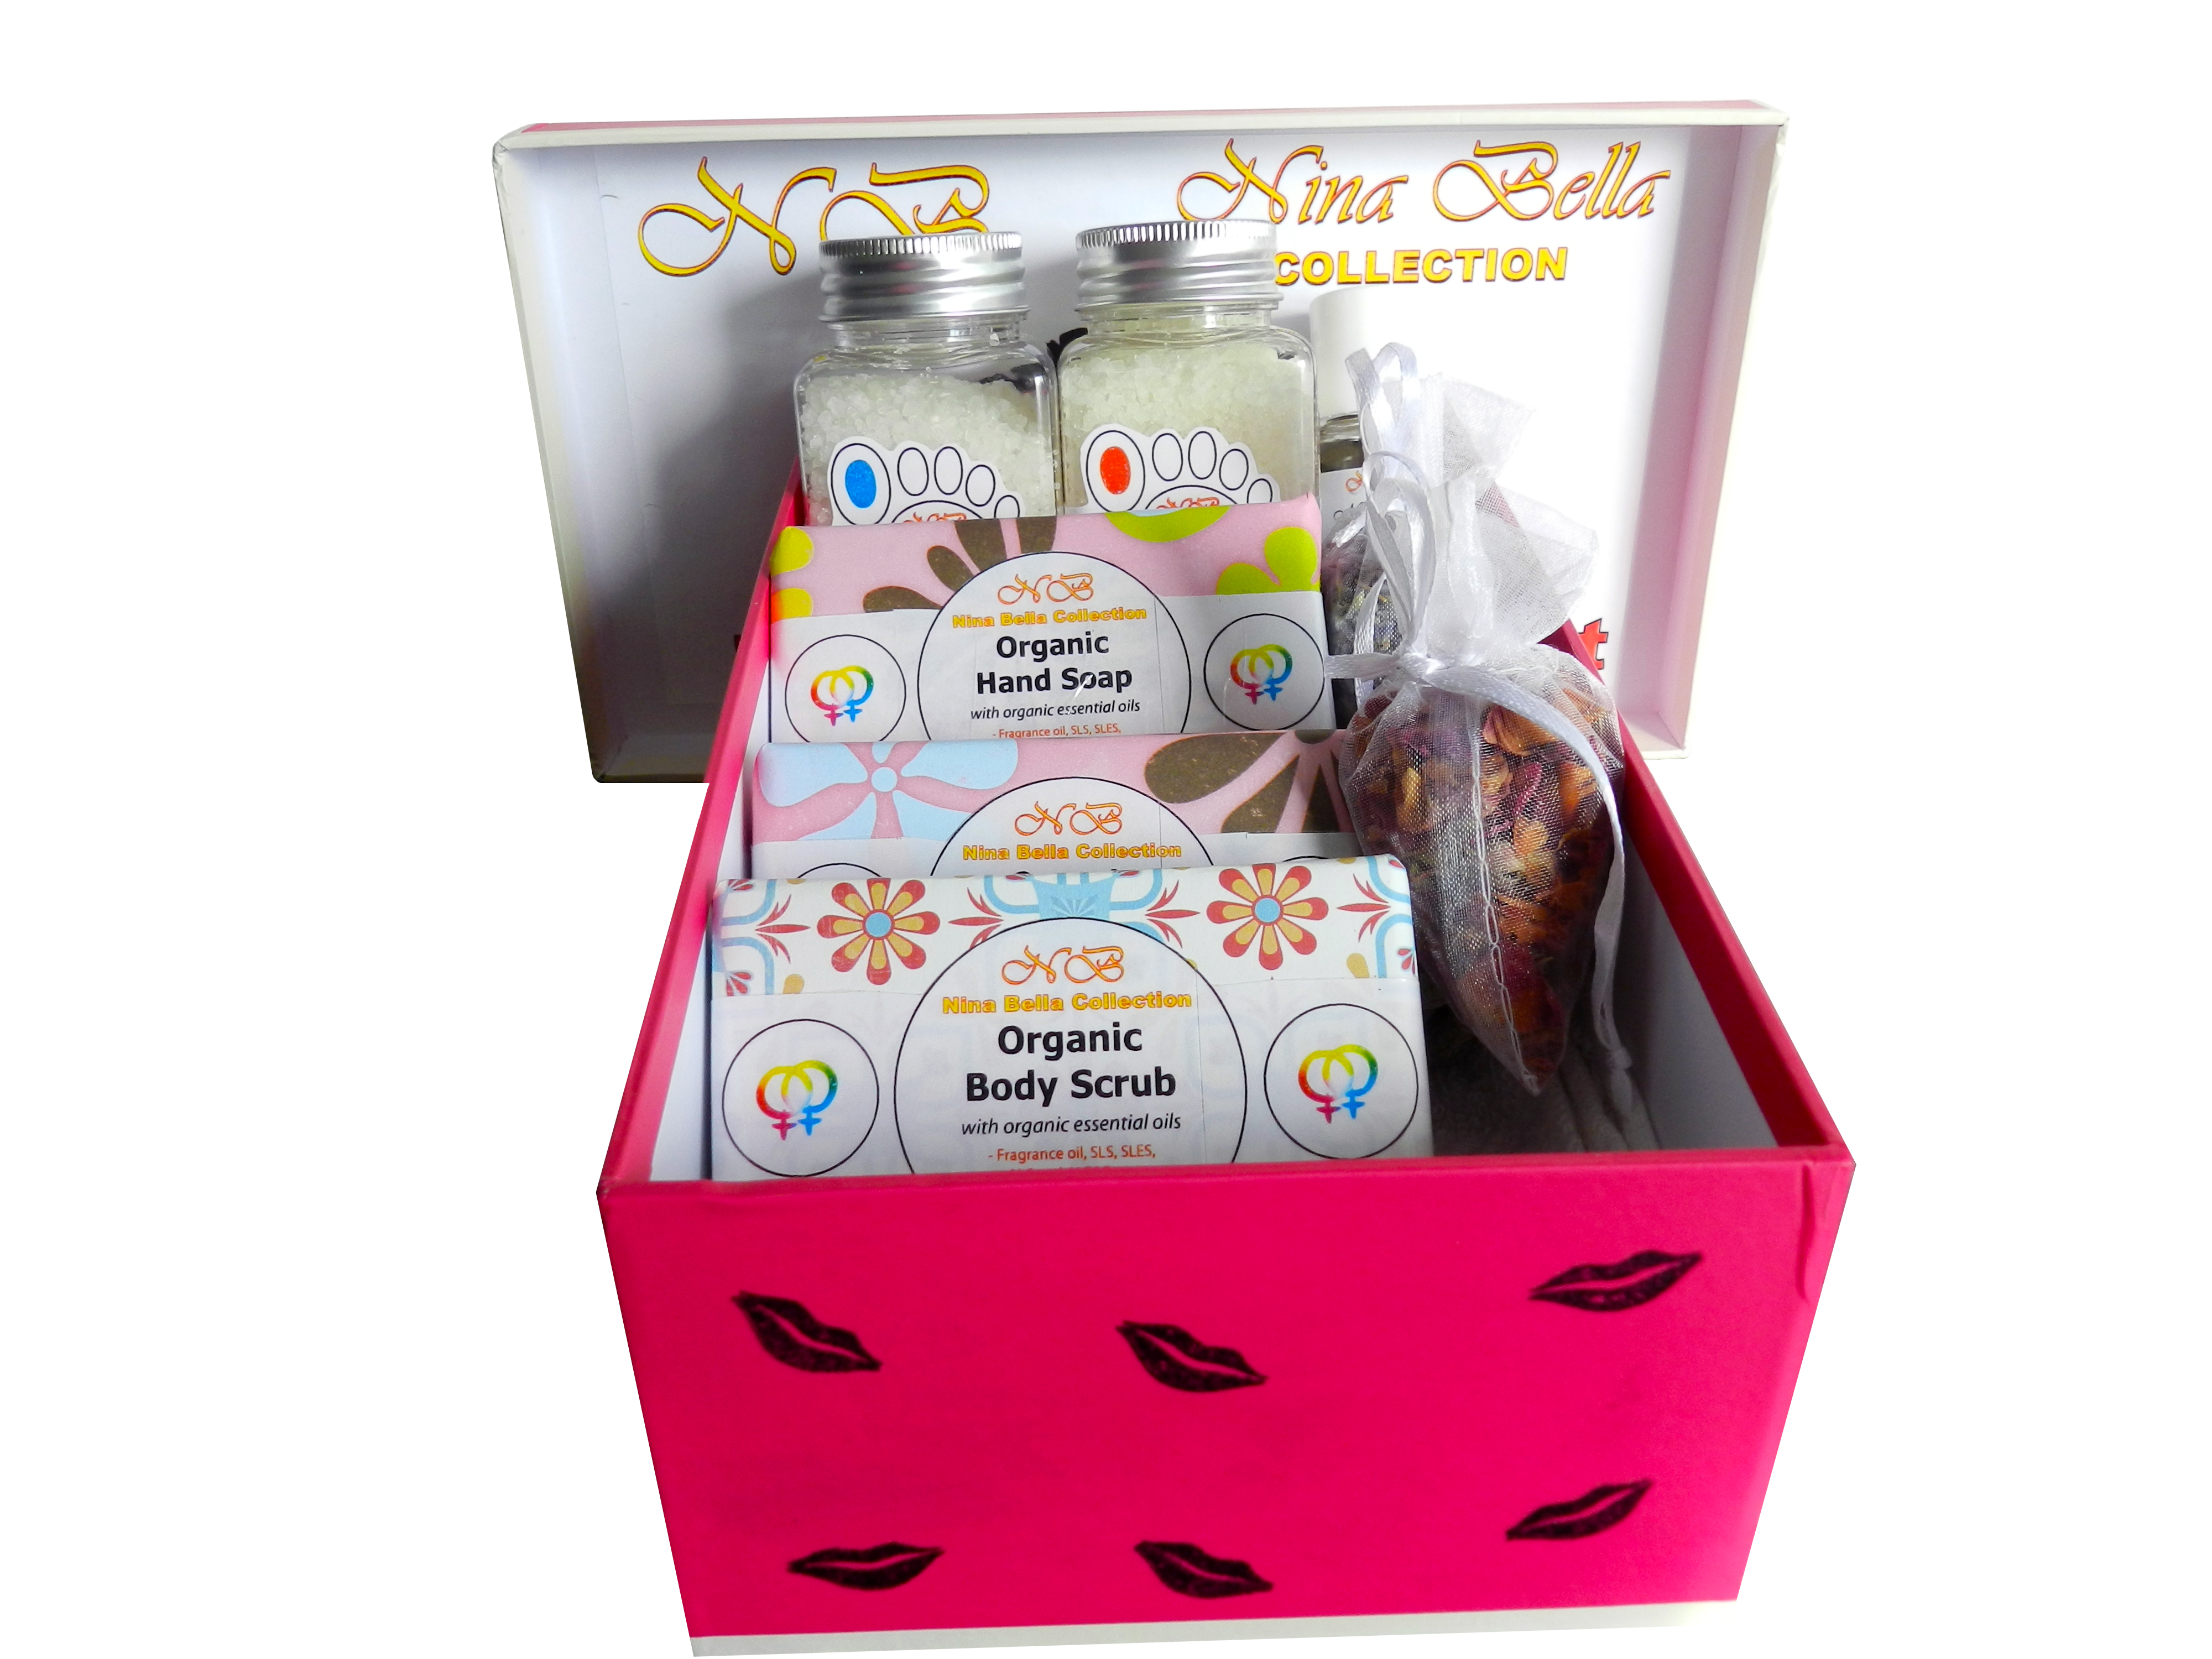 NBC Hers and Hers Gift Basket 1